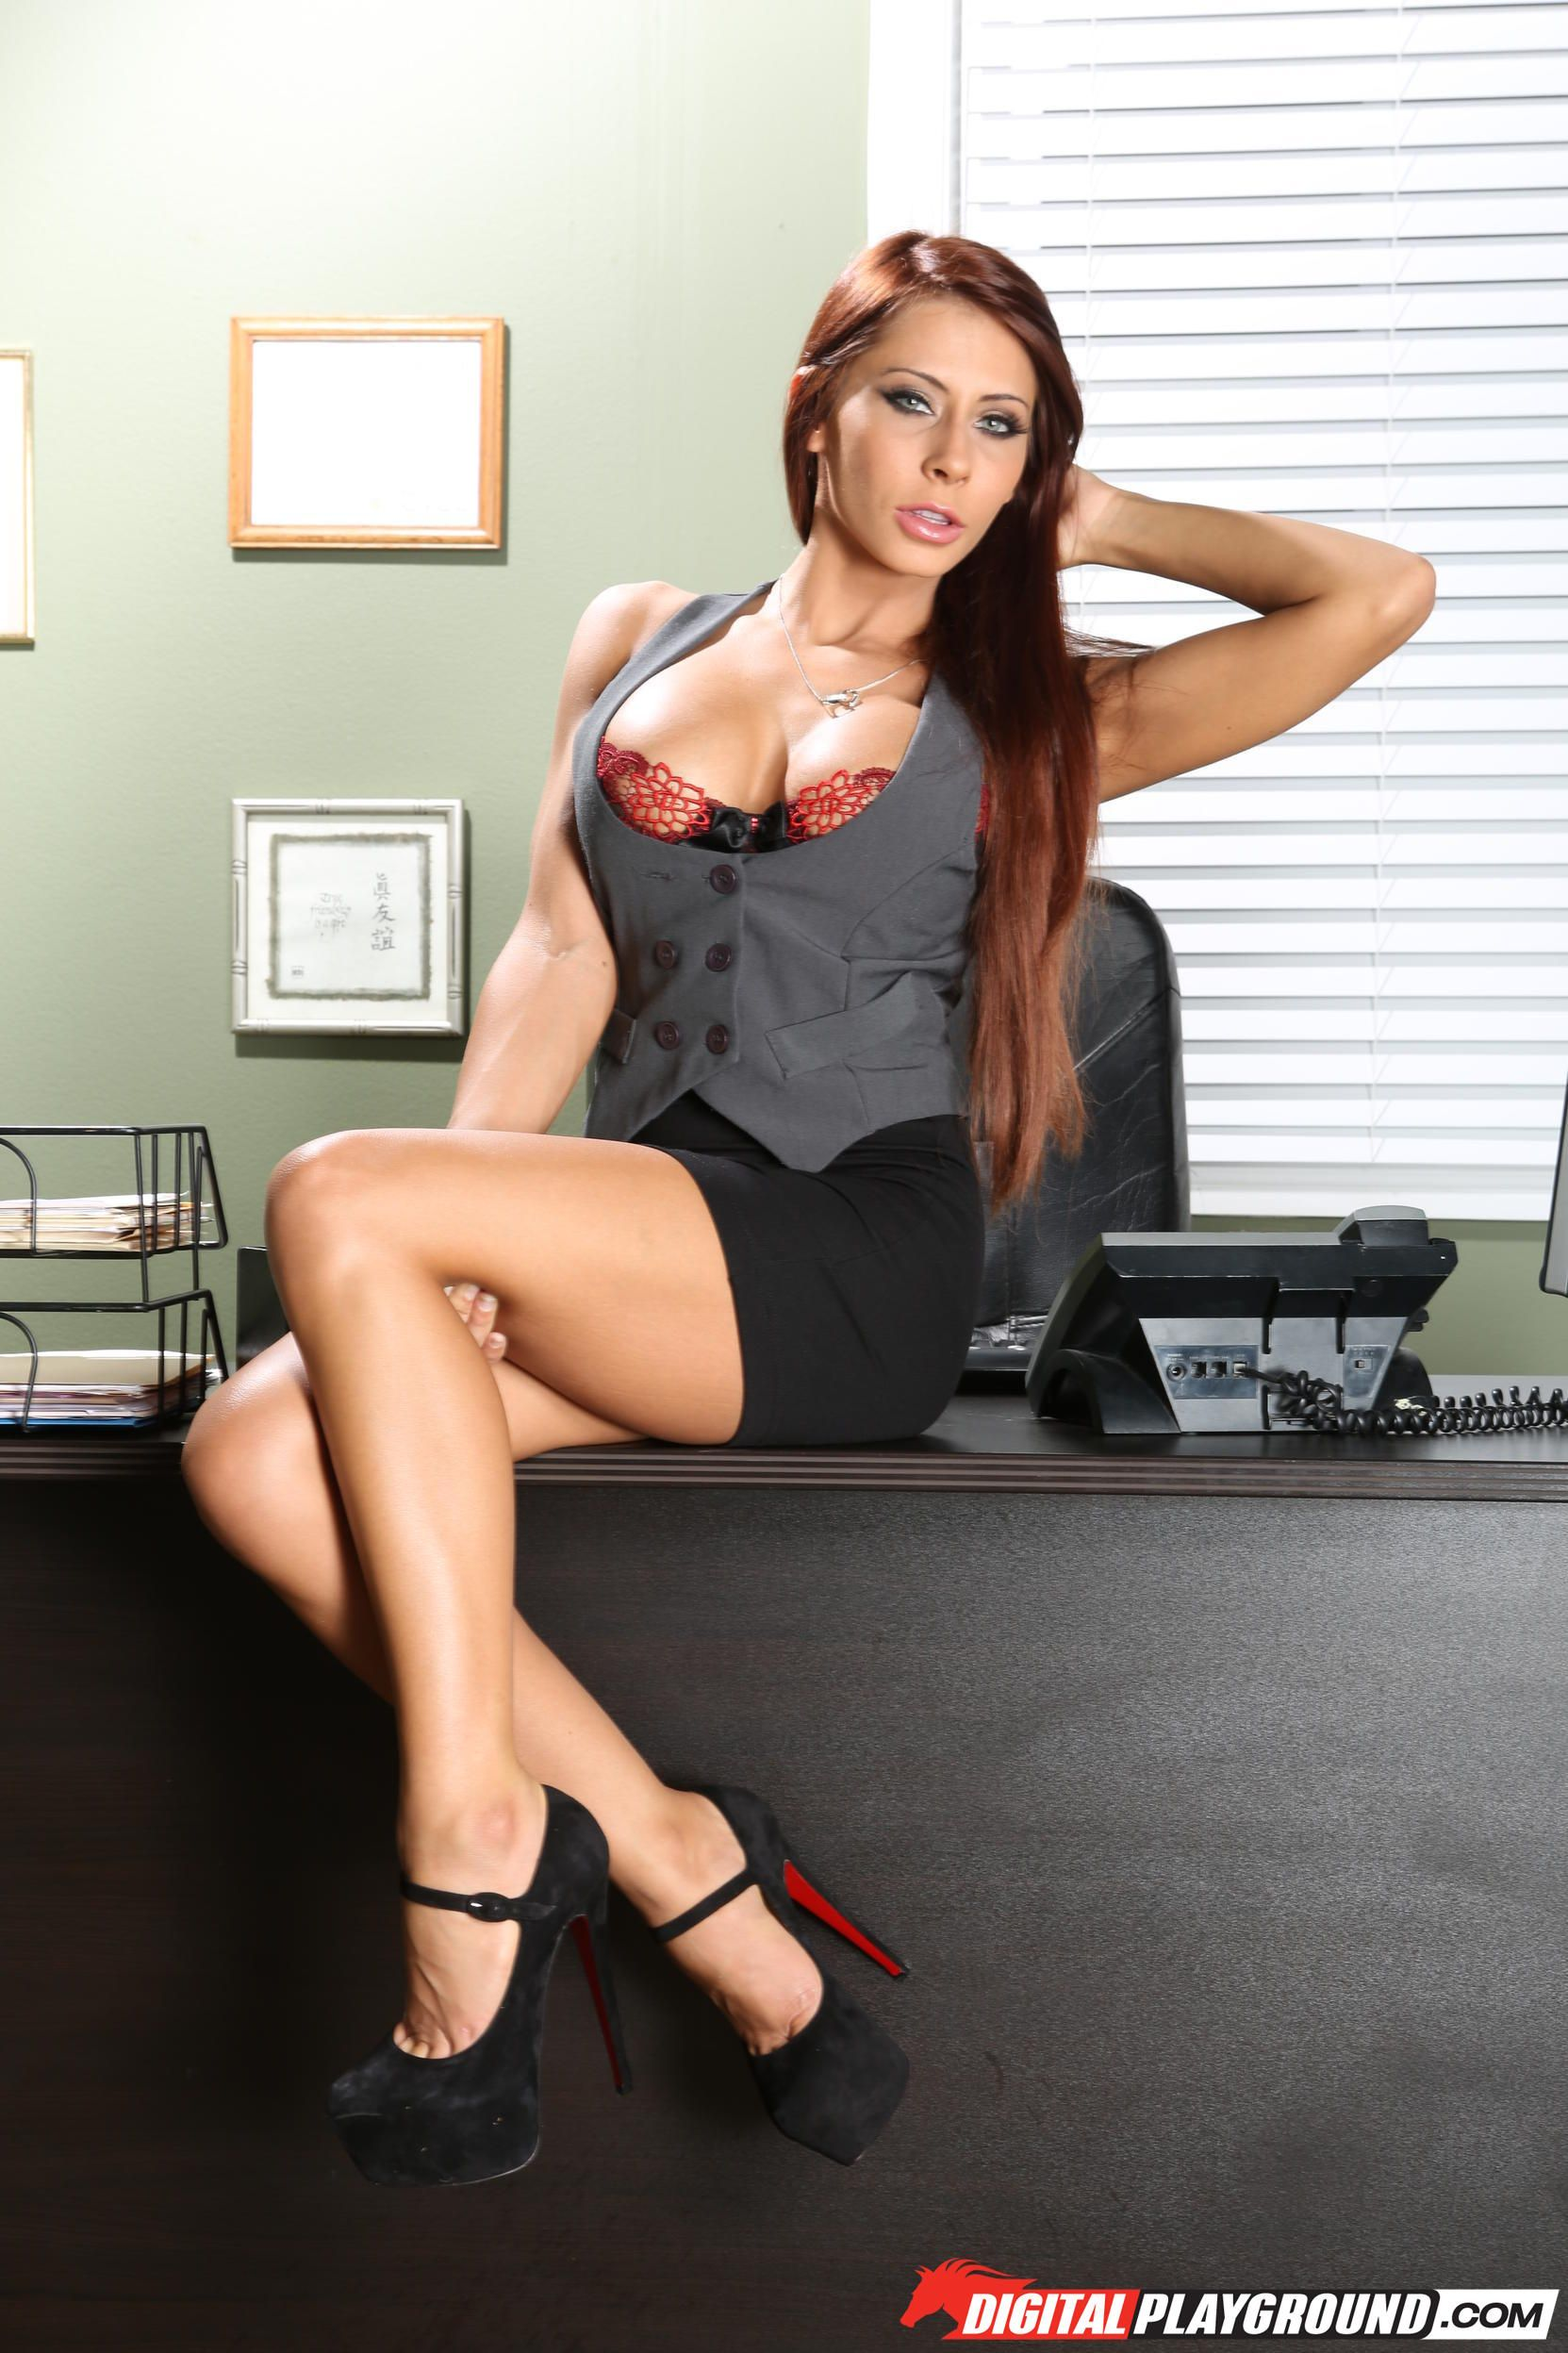 Hot MILF babe Madison Ivy gives a massage and gets ass fucked № 784911 бесплатно